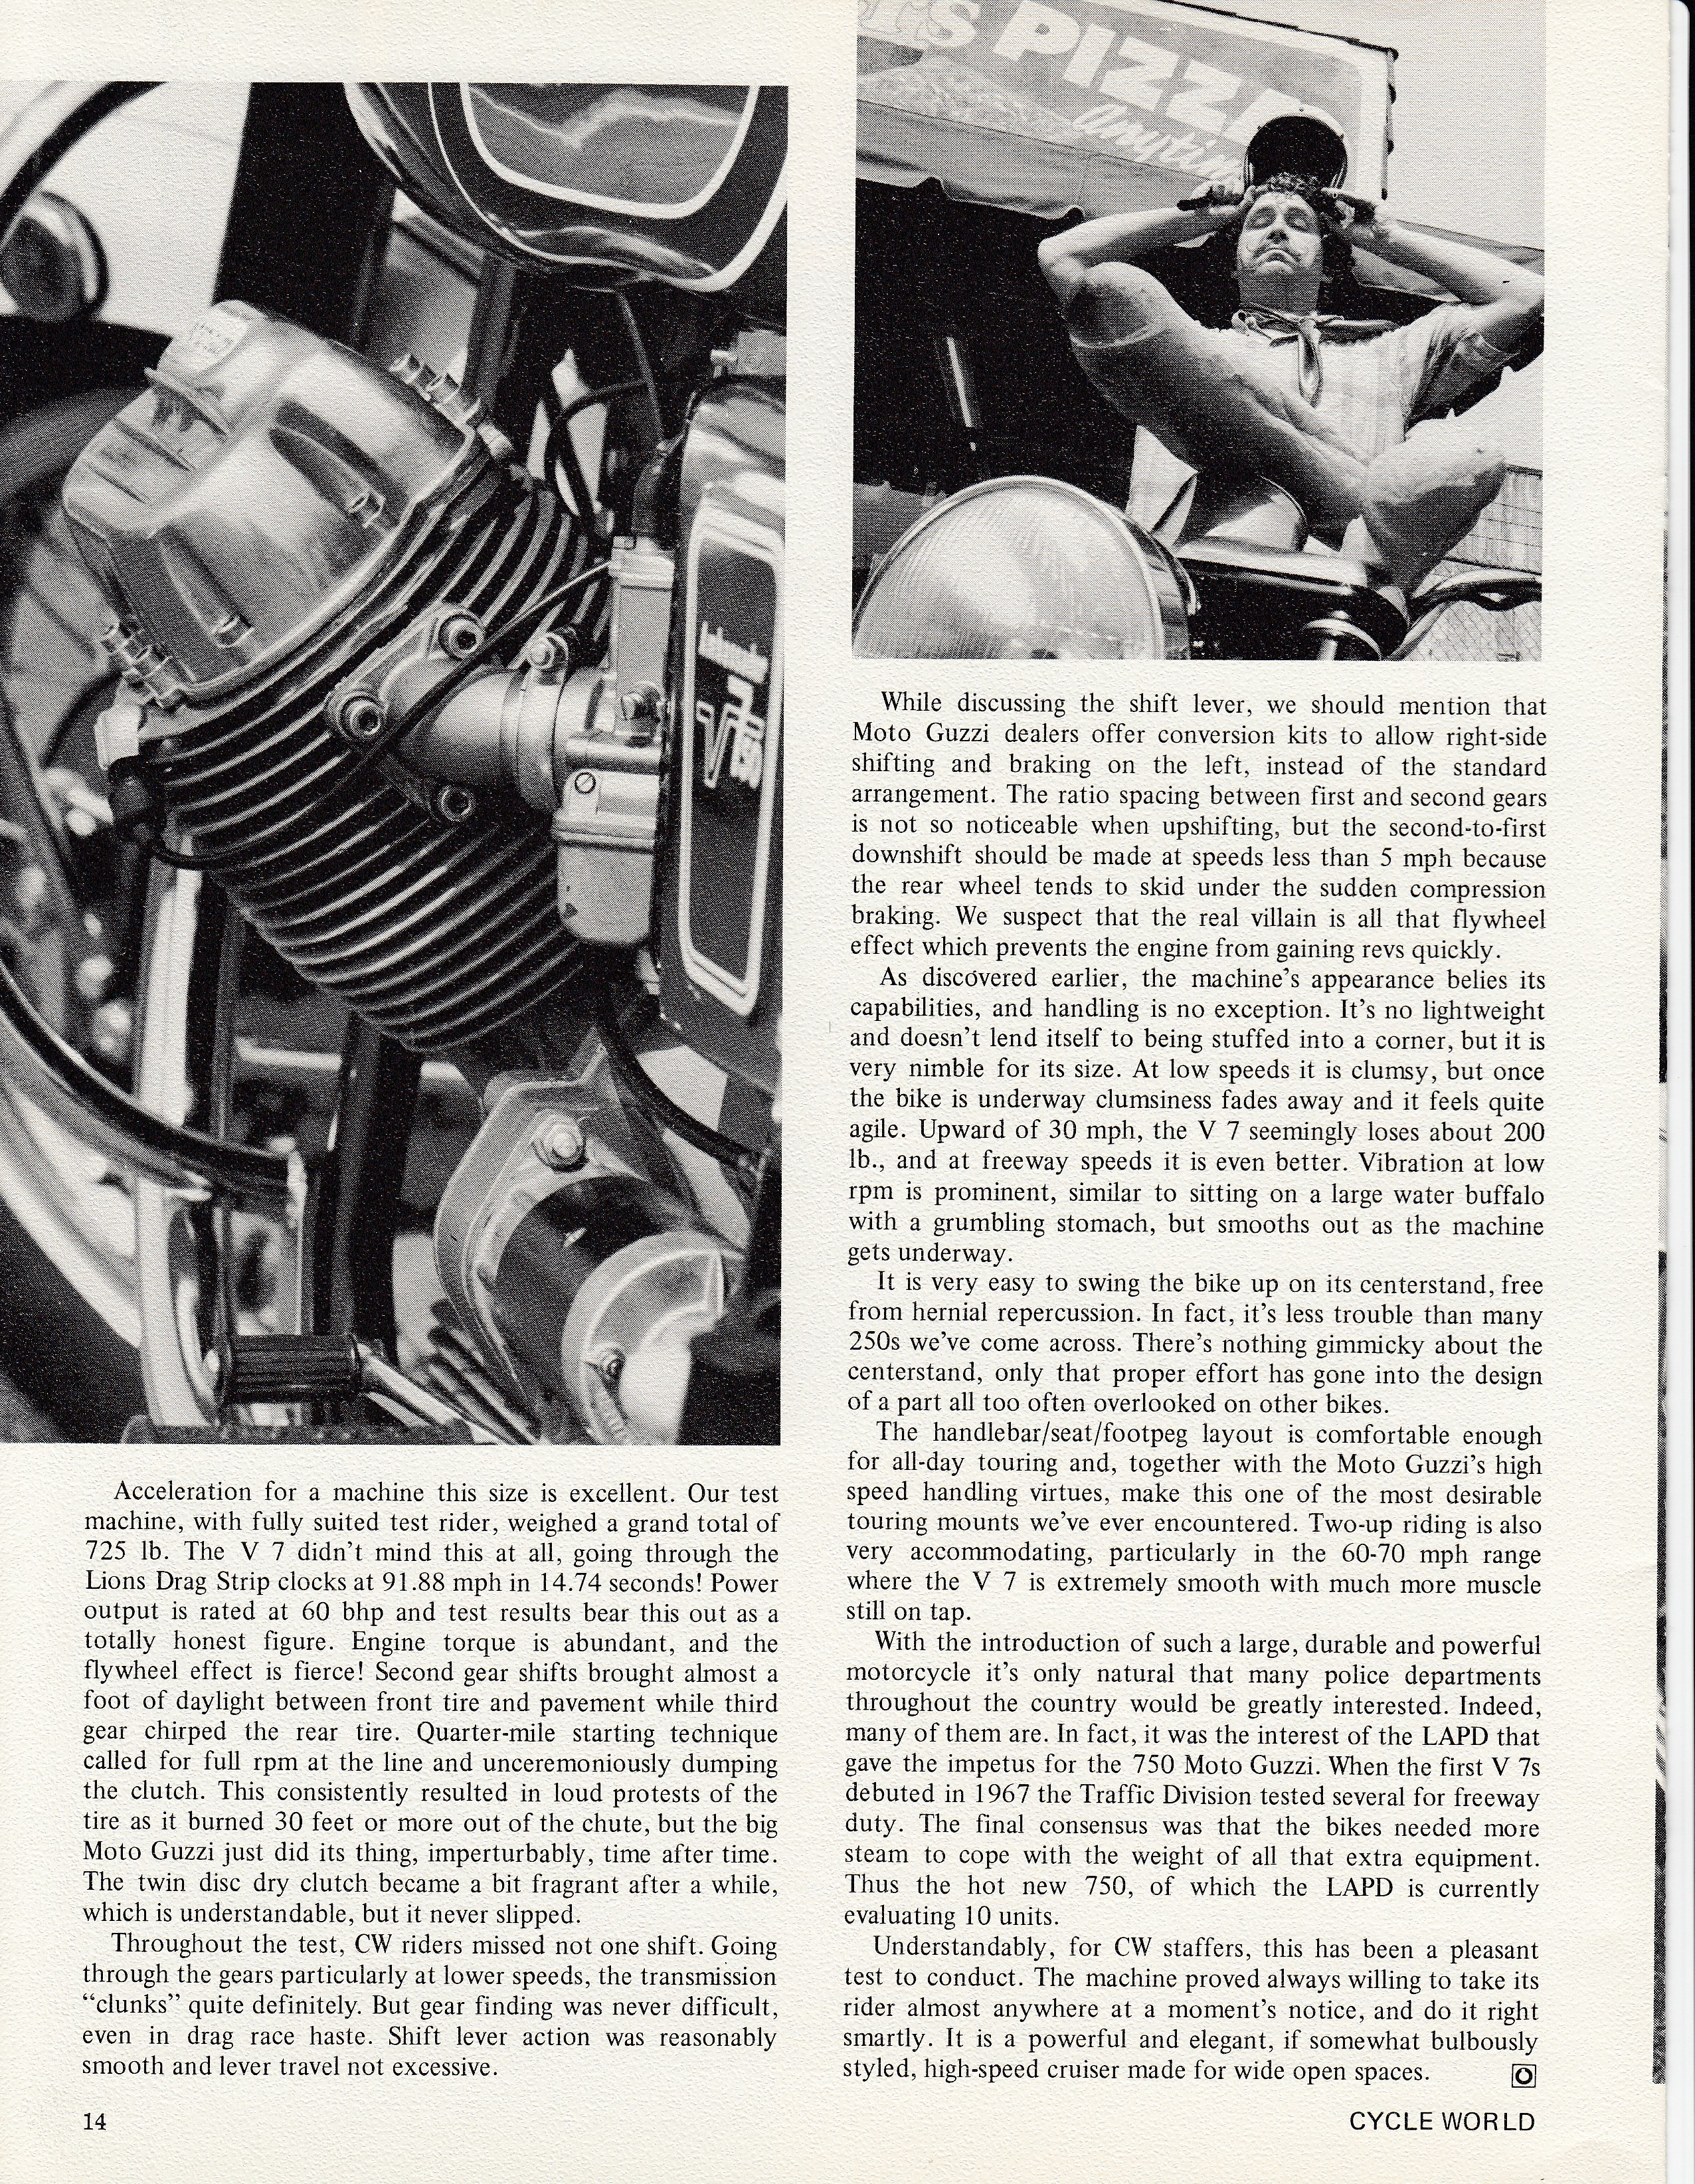 Moto Guzzi Ambassador factory brochure of magazine reviews, Page 14 of 16.